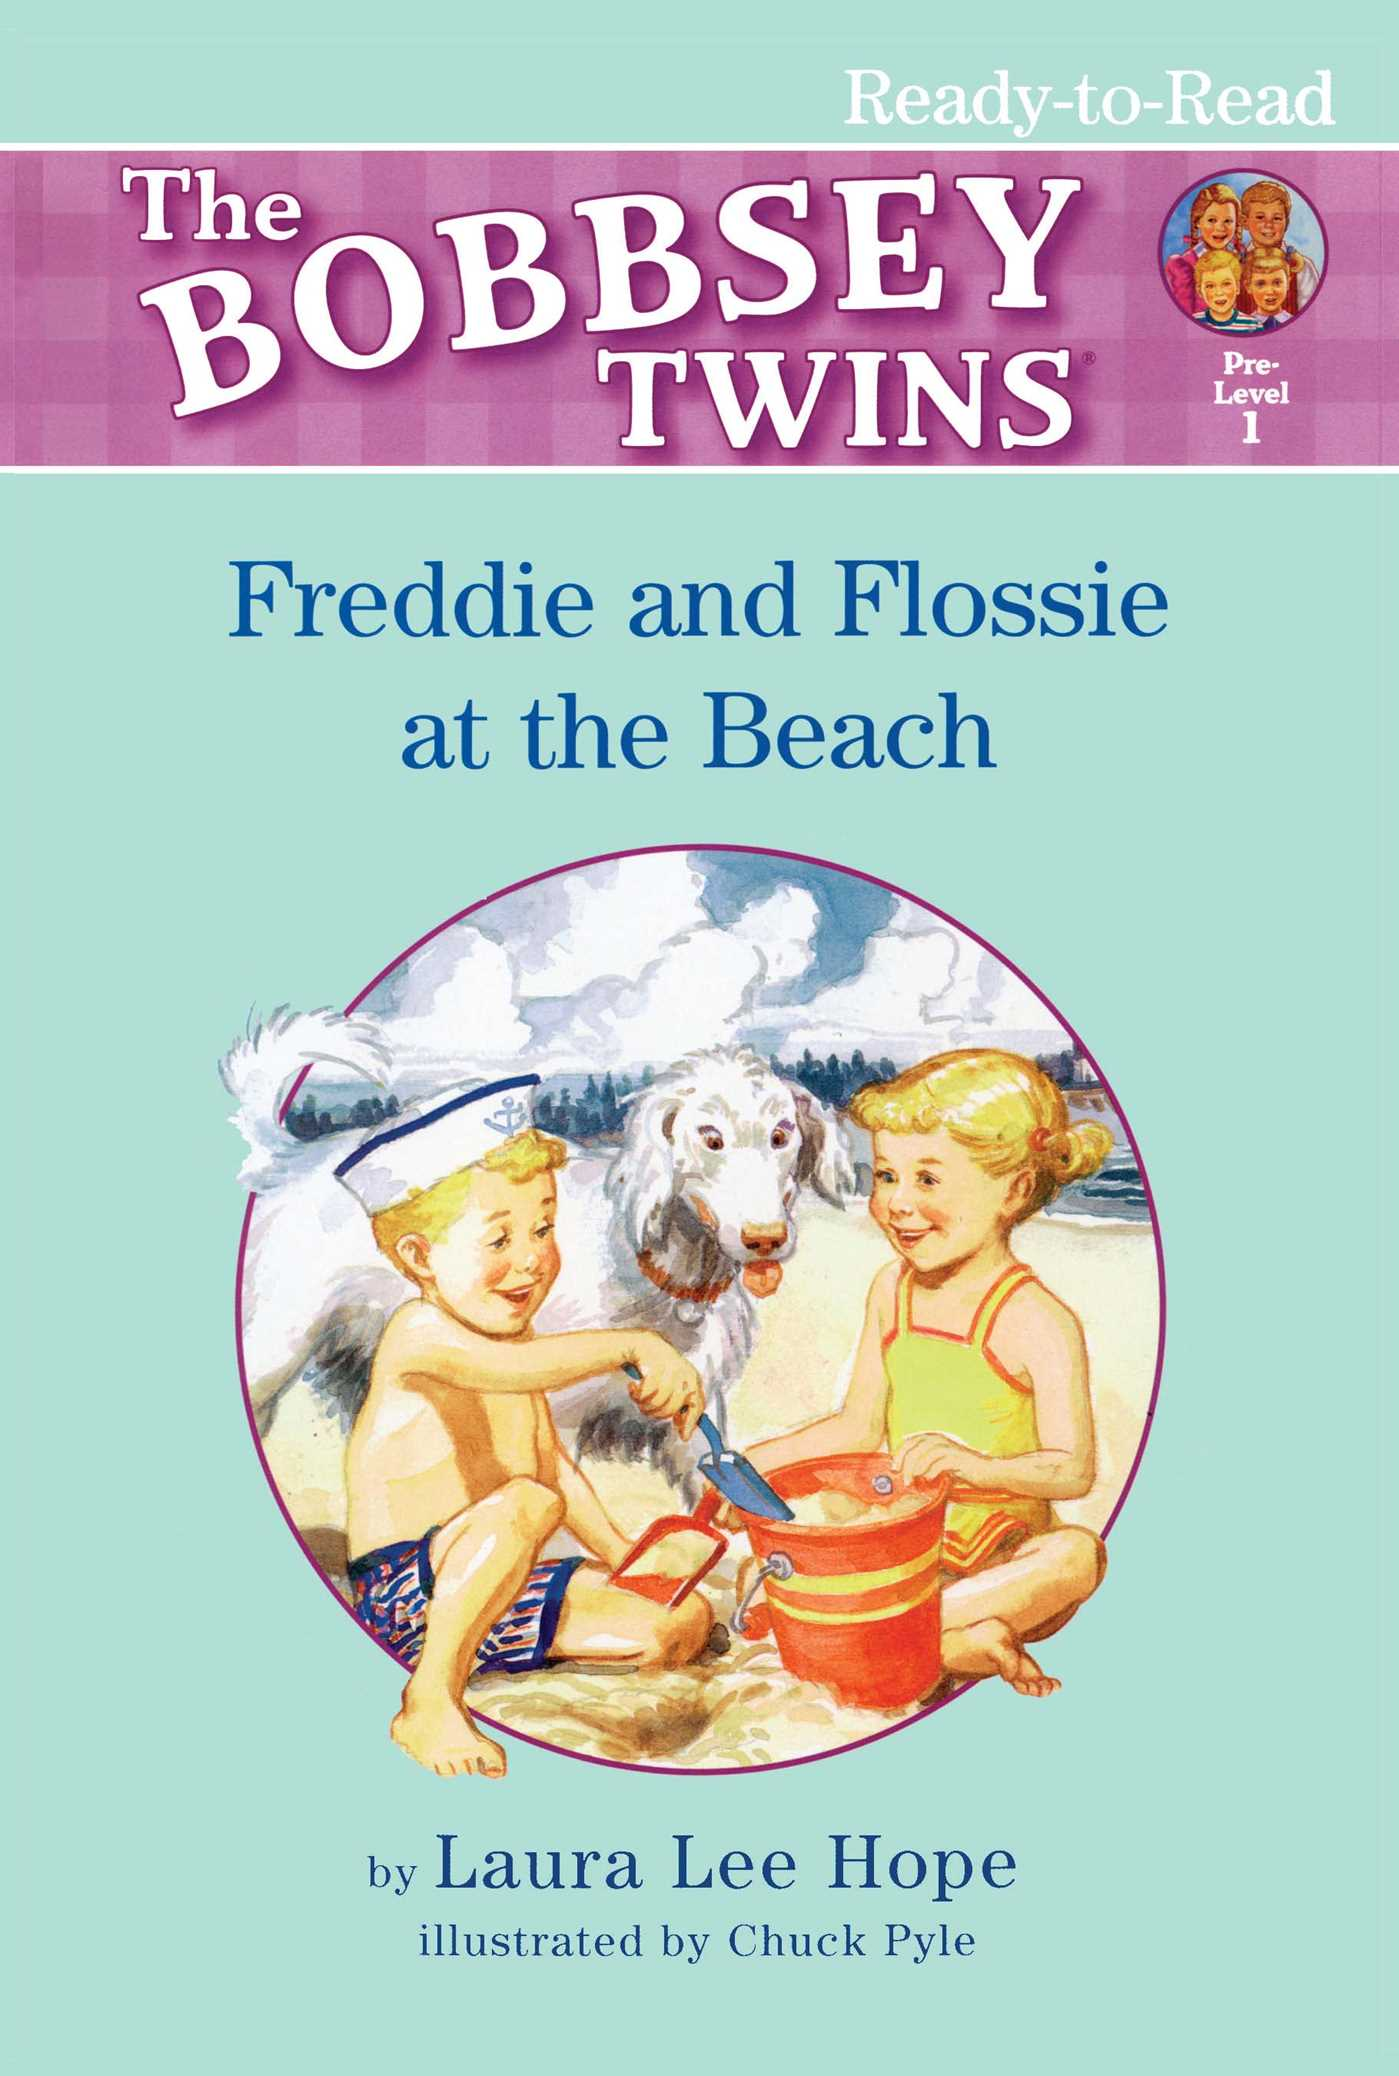 Freddie-and-flossie-at-the-beach-9781416902683_hr